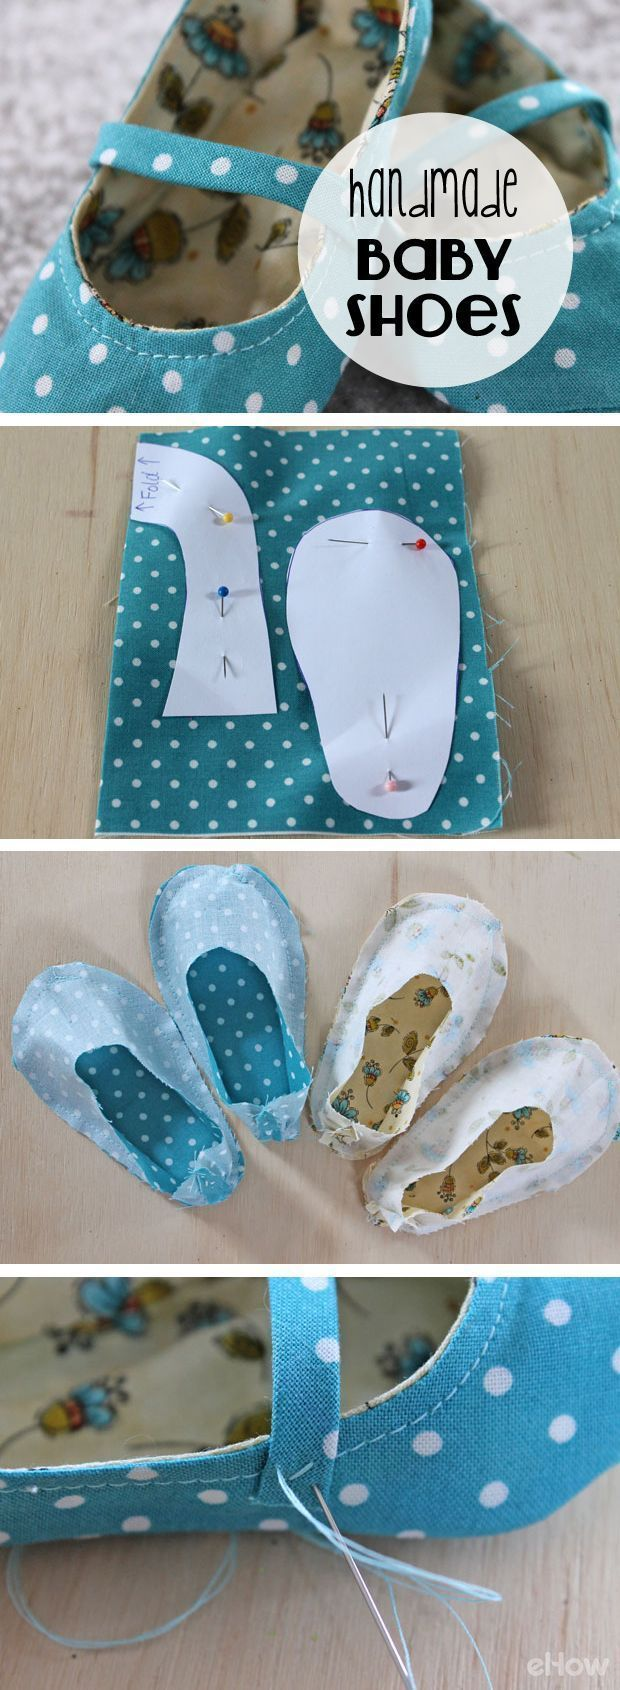 So adorable! Who knew making fabric baby shoes were this simple! Dont spend money on expensive shoes, especially when you can hand make tons for the same price. How to tutorial with pictures here: http://www.ehow.com/ehow-crafts/blog/handmade-fabric-baby-shoes/?utm_source=pinterest.com&utm_medium=referral&utm_content=blog&utm_campaign=fanpage